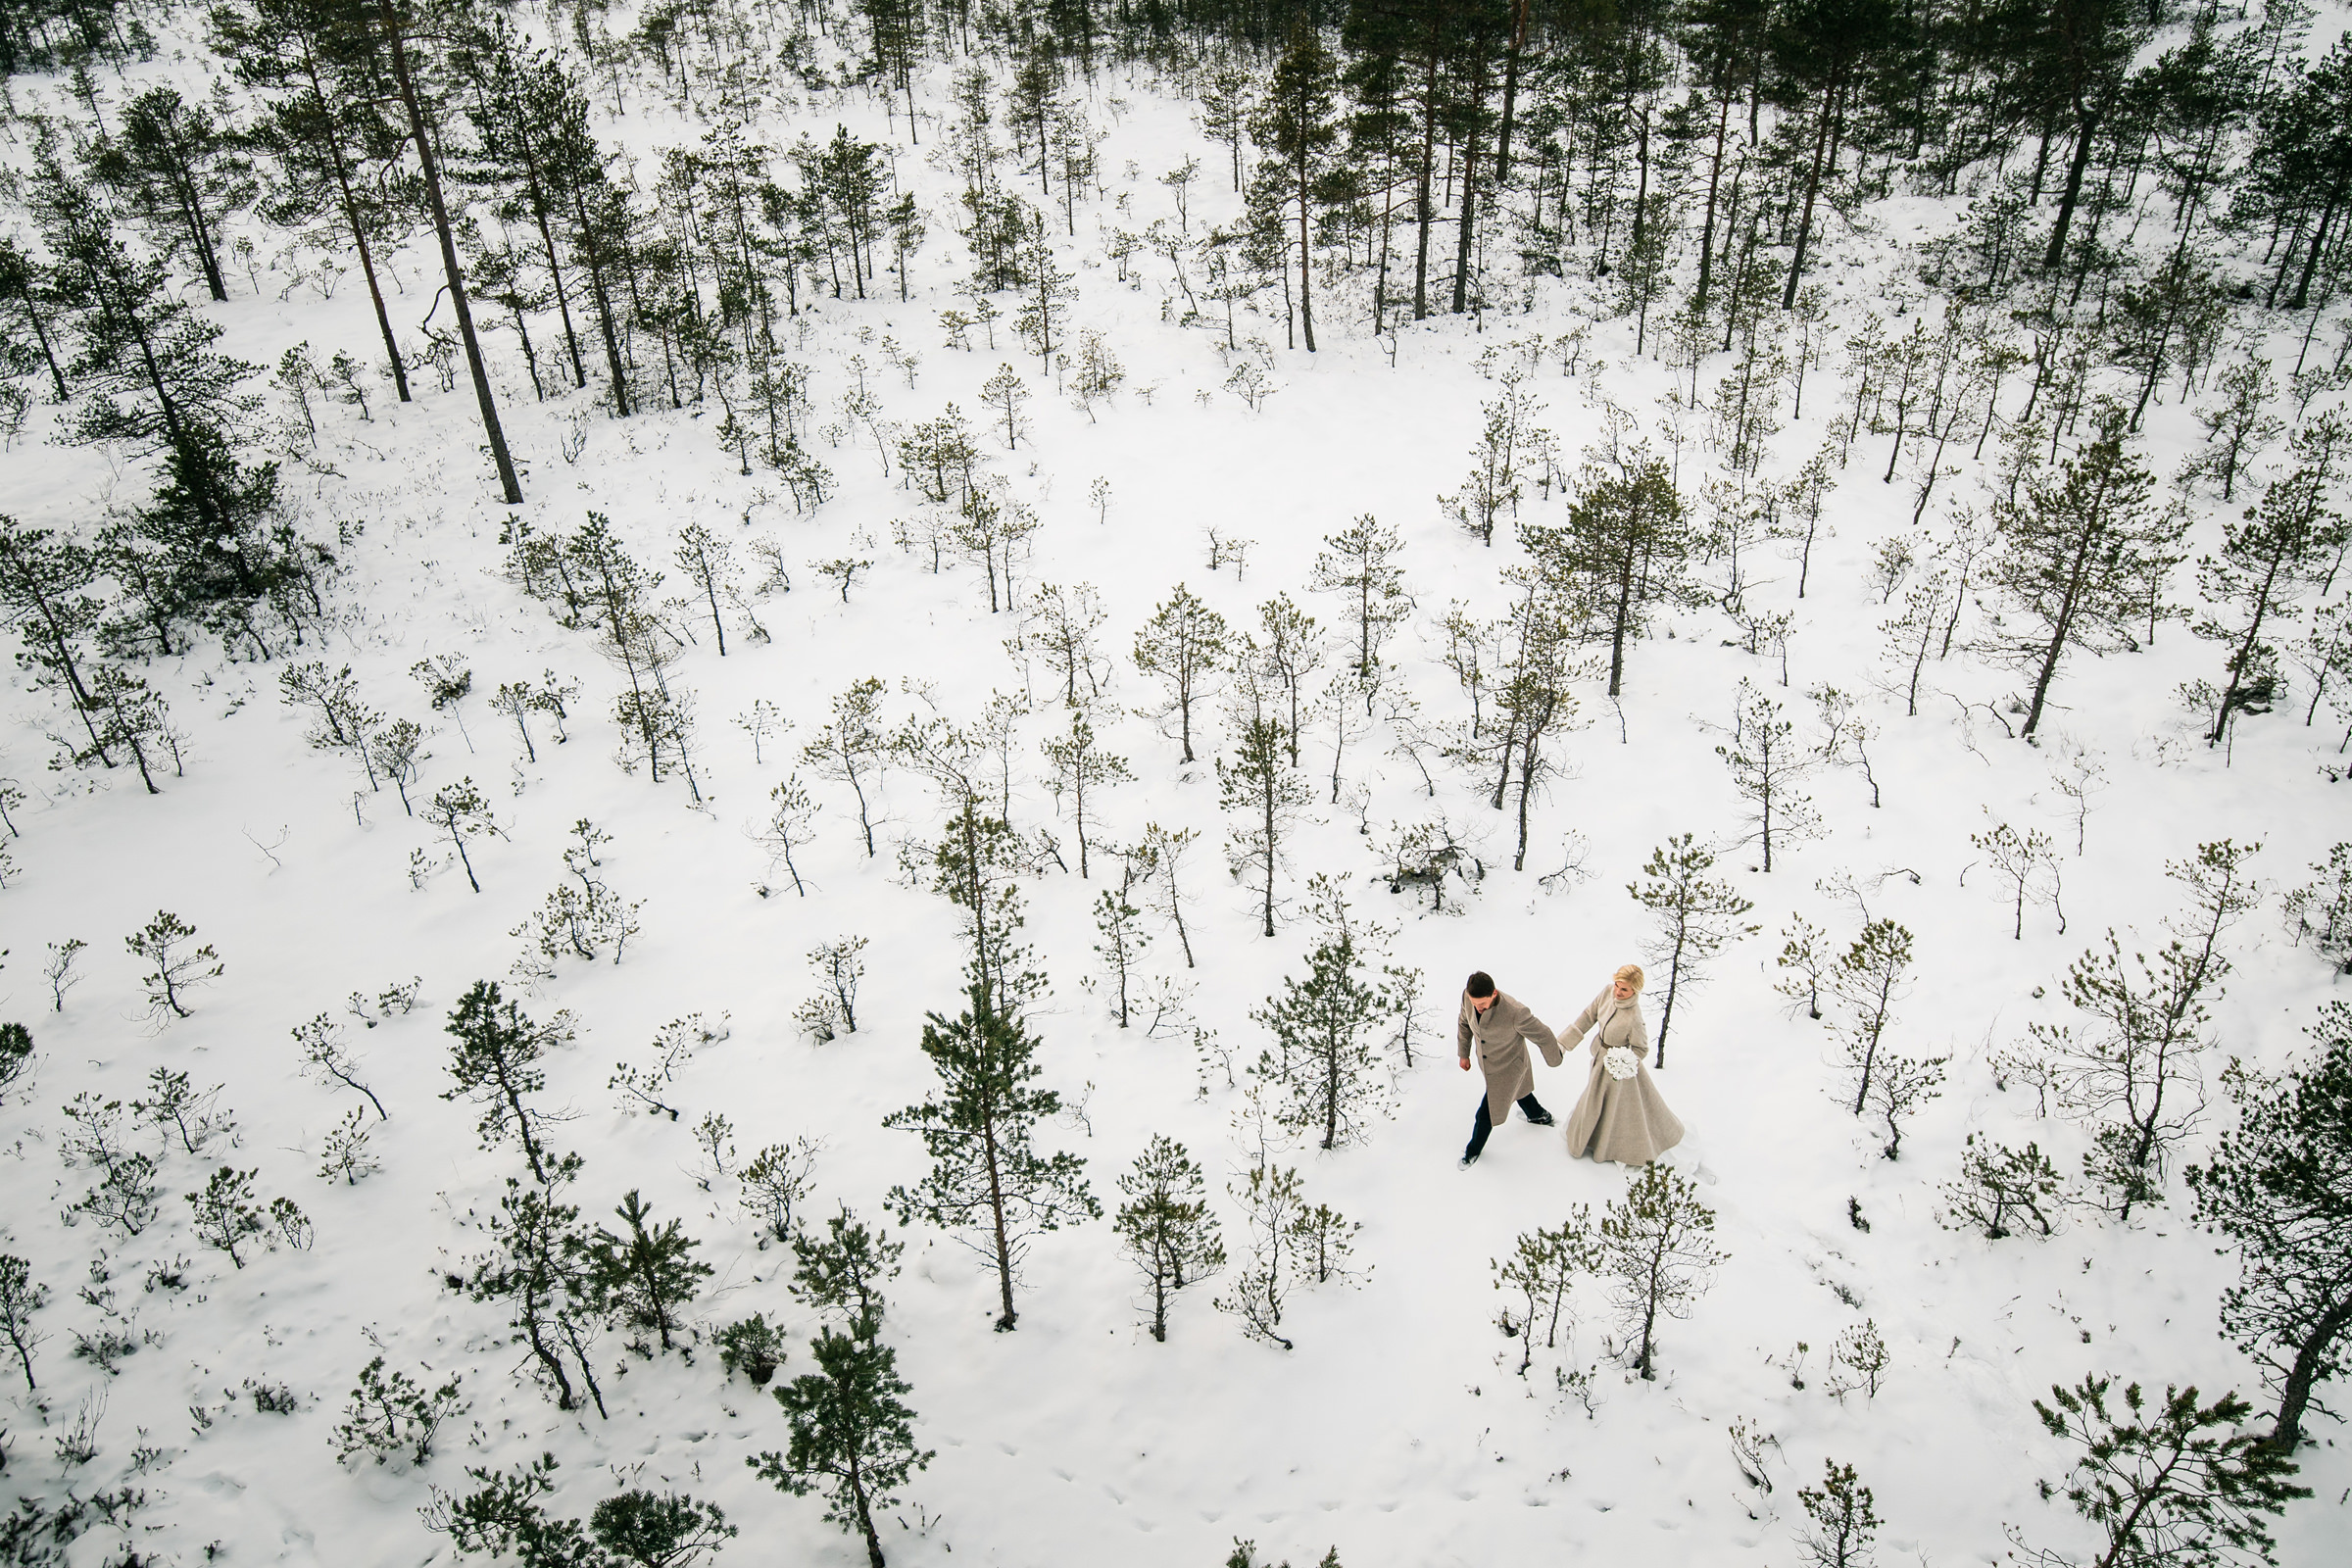 Estonia - Couple in snow covered forest - photo by M&J Studios